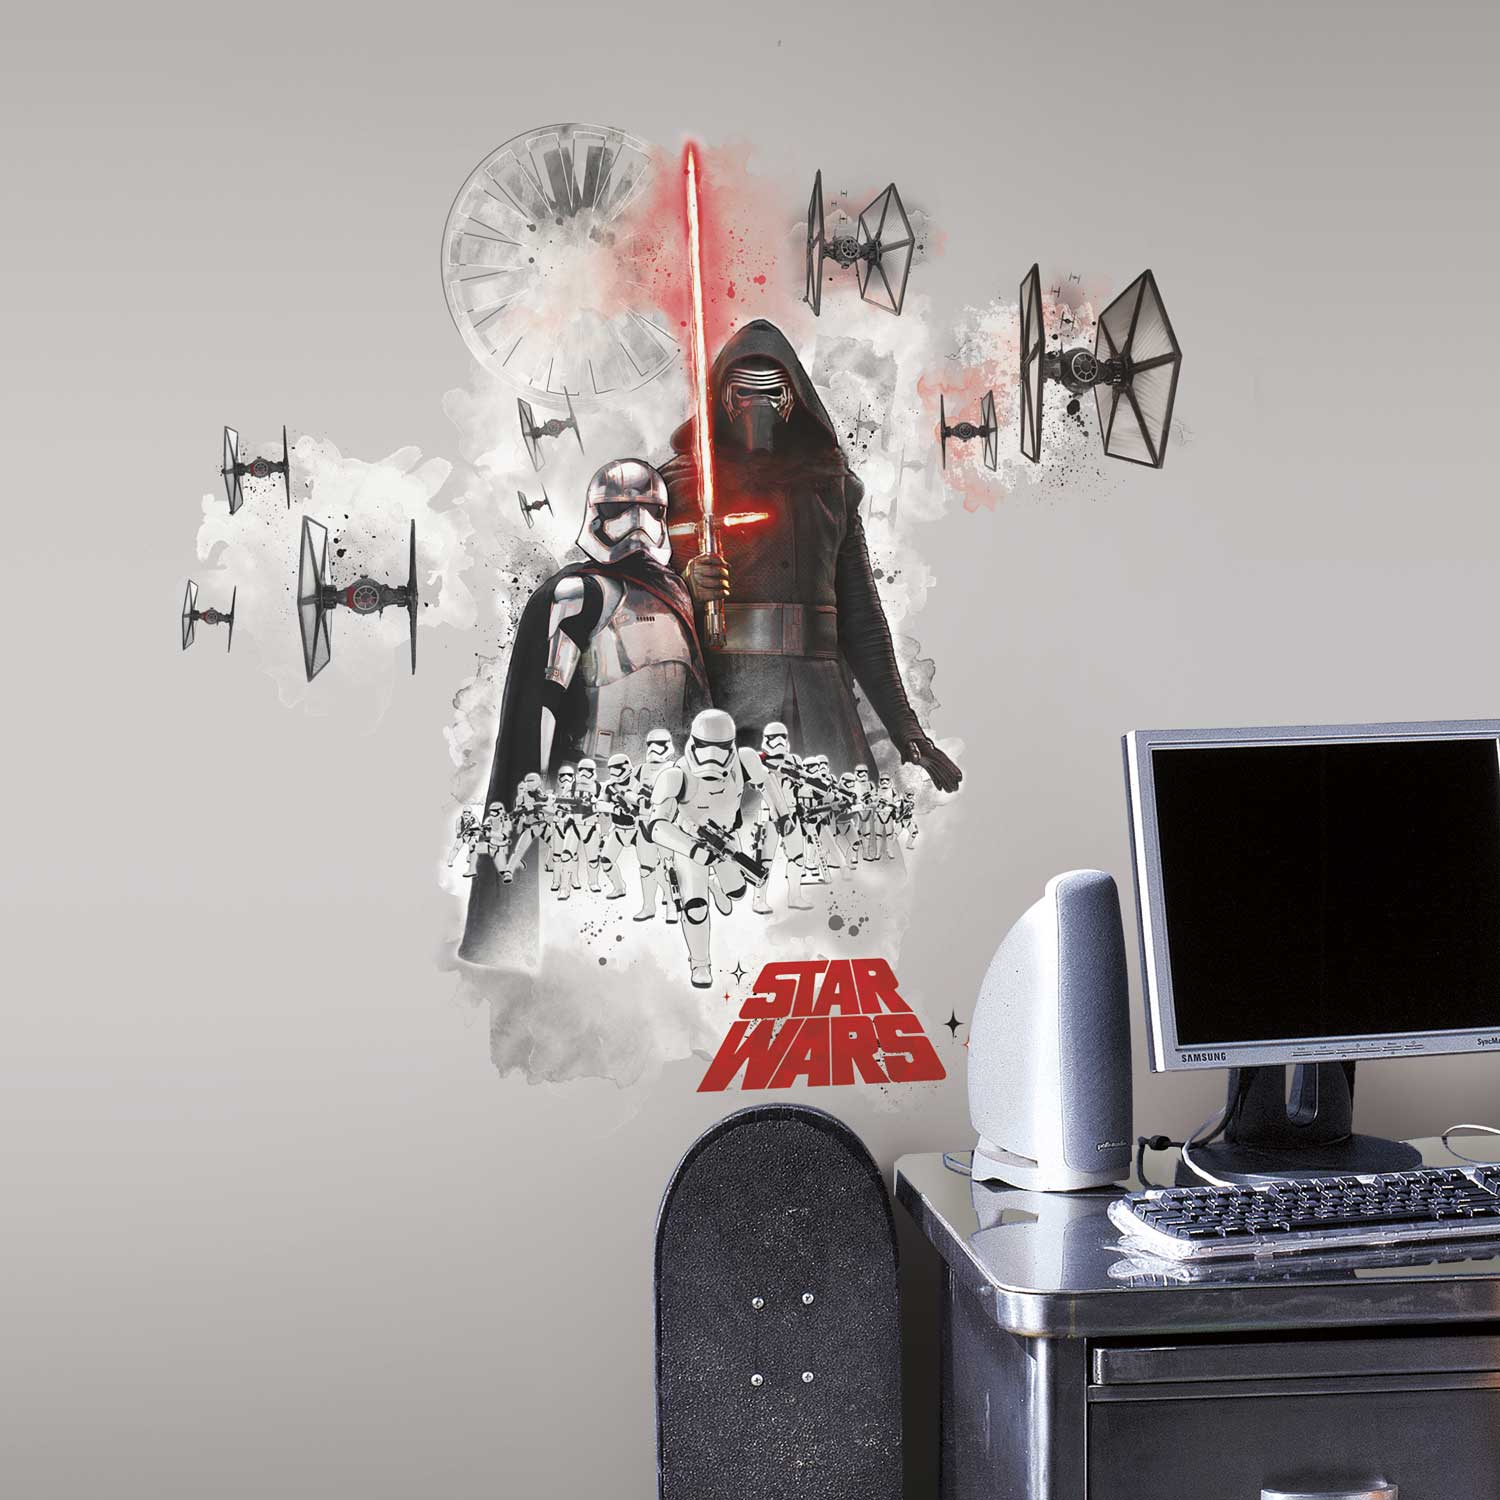 wandsticker star wars dunkle seite der macht wandtattoo. Black Bedroom Furniture Sets. Home Design Ideas